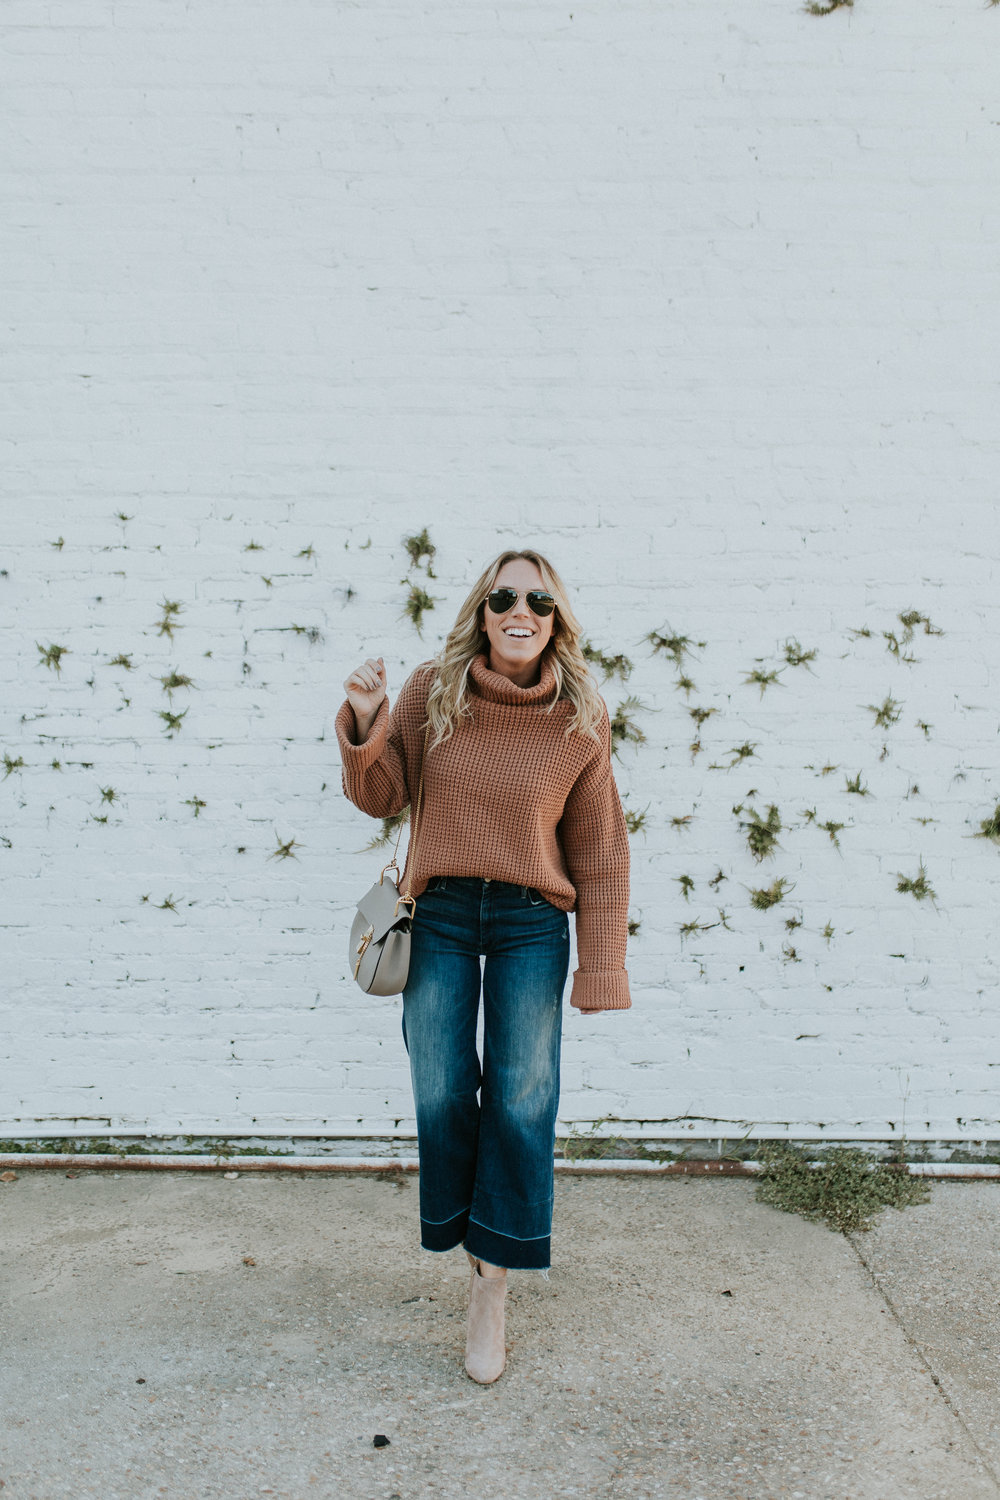 Blogger Gracefully Taylored in Free People Sweater & Dee Keller Booties(1).jpg